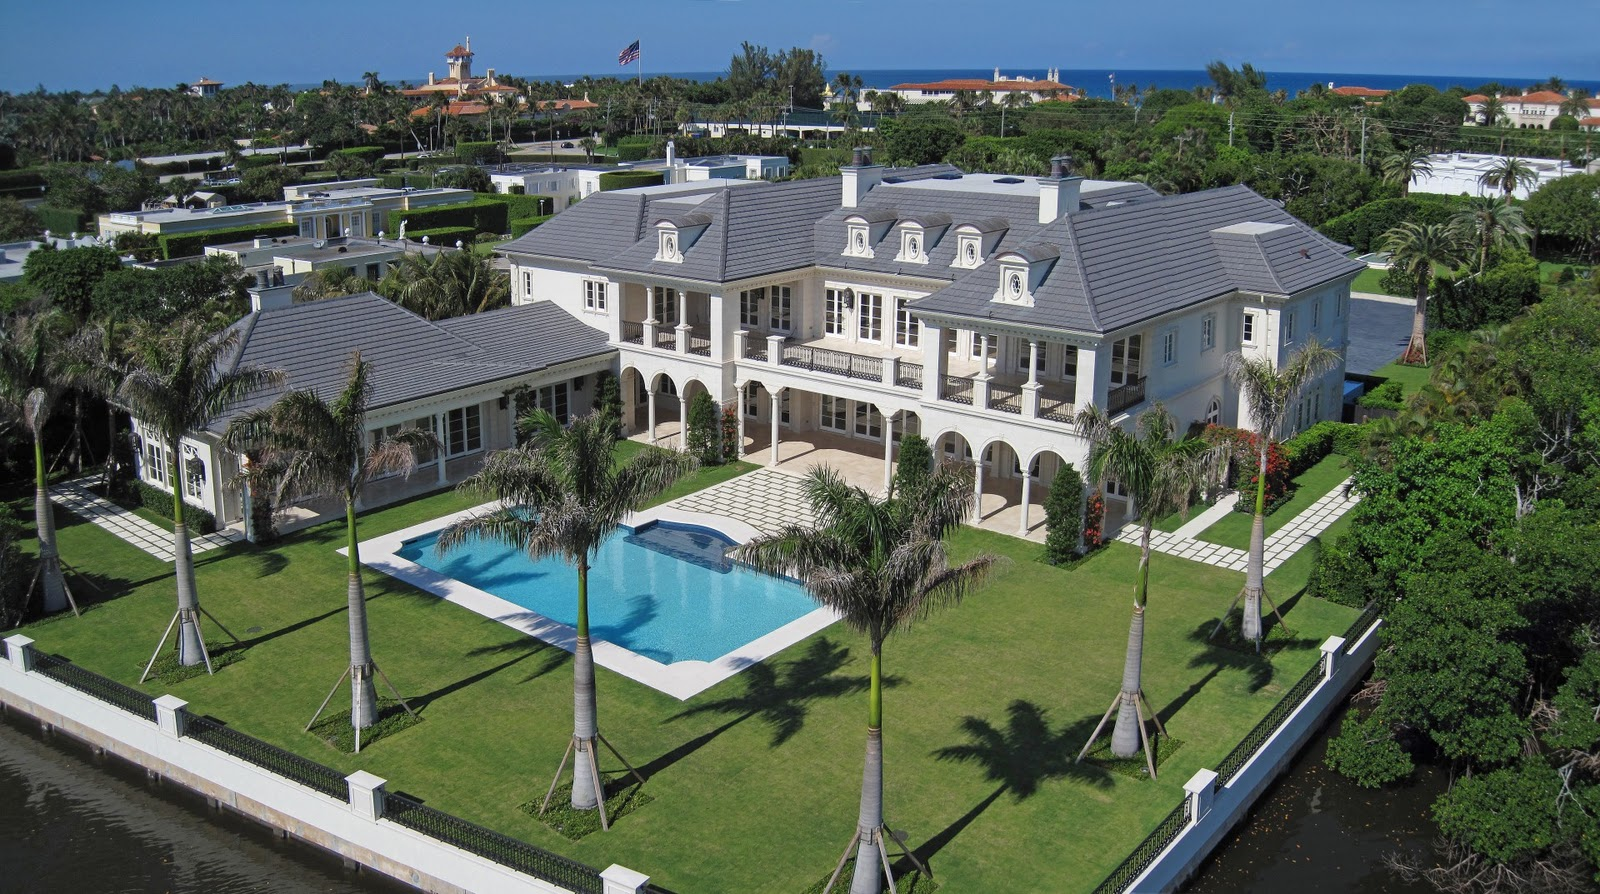 Tours And Photos Of The Biggest Houses In Florida